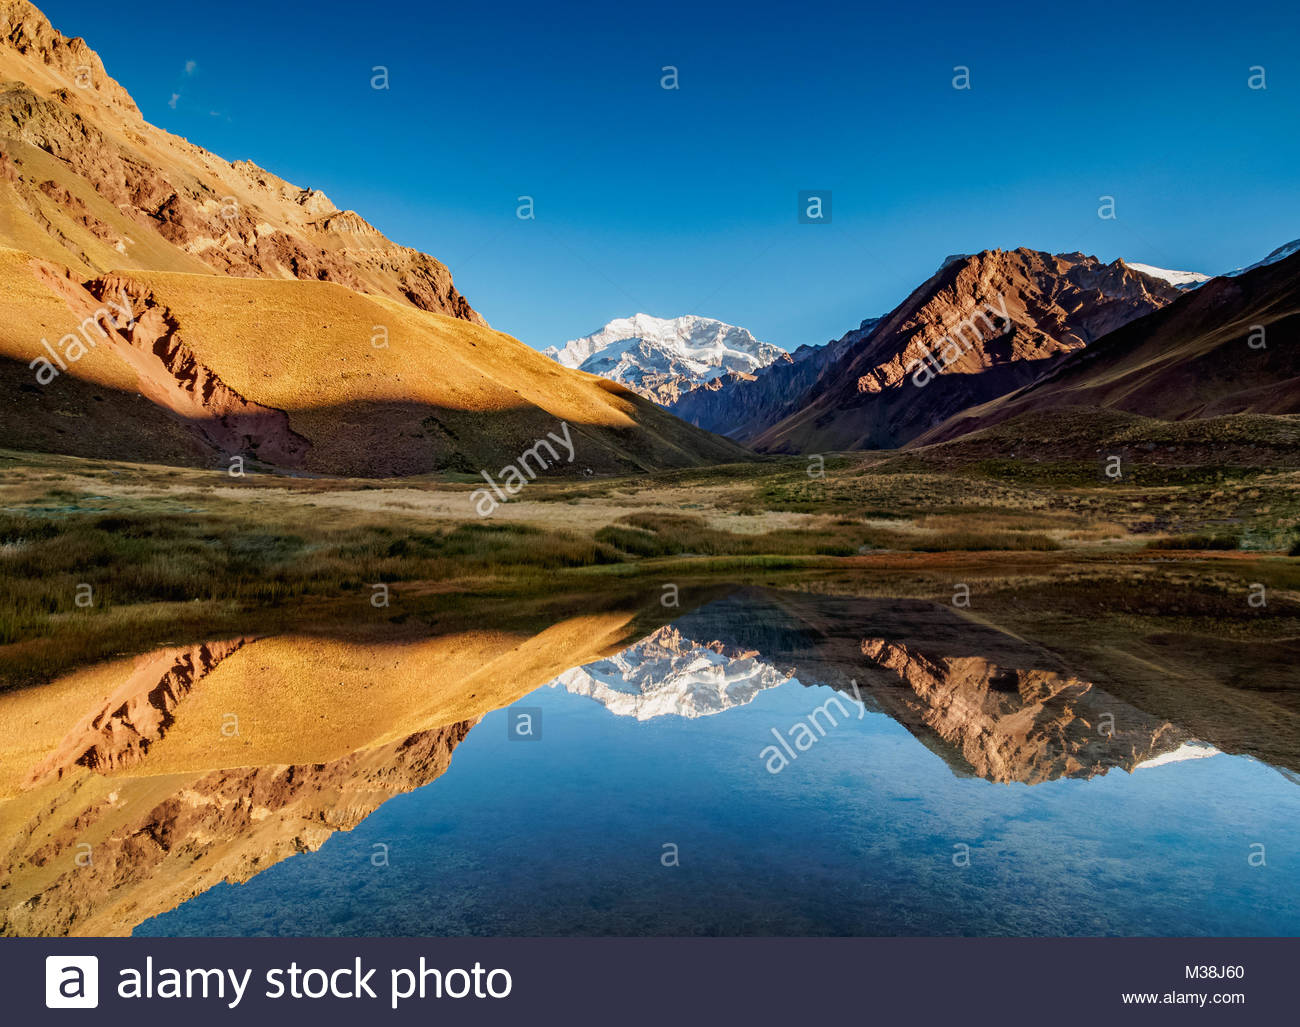 Aconcagua Mountain reflecting in the Espejo Lagoon, Aconcagua Provincial Park, Central Andes, Mendoza Province, - Stock Image